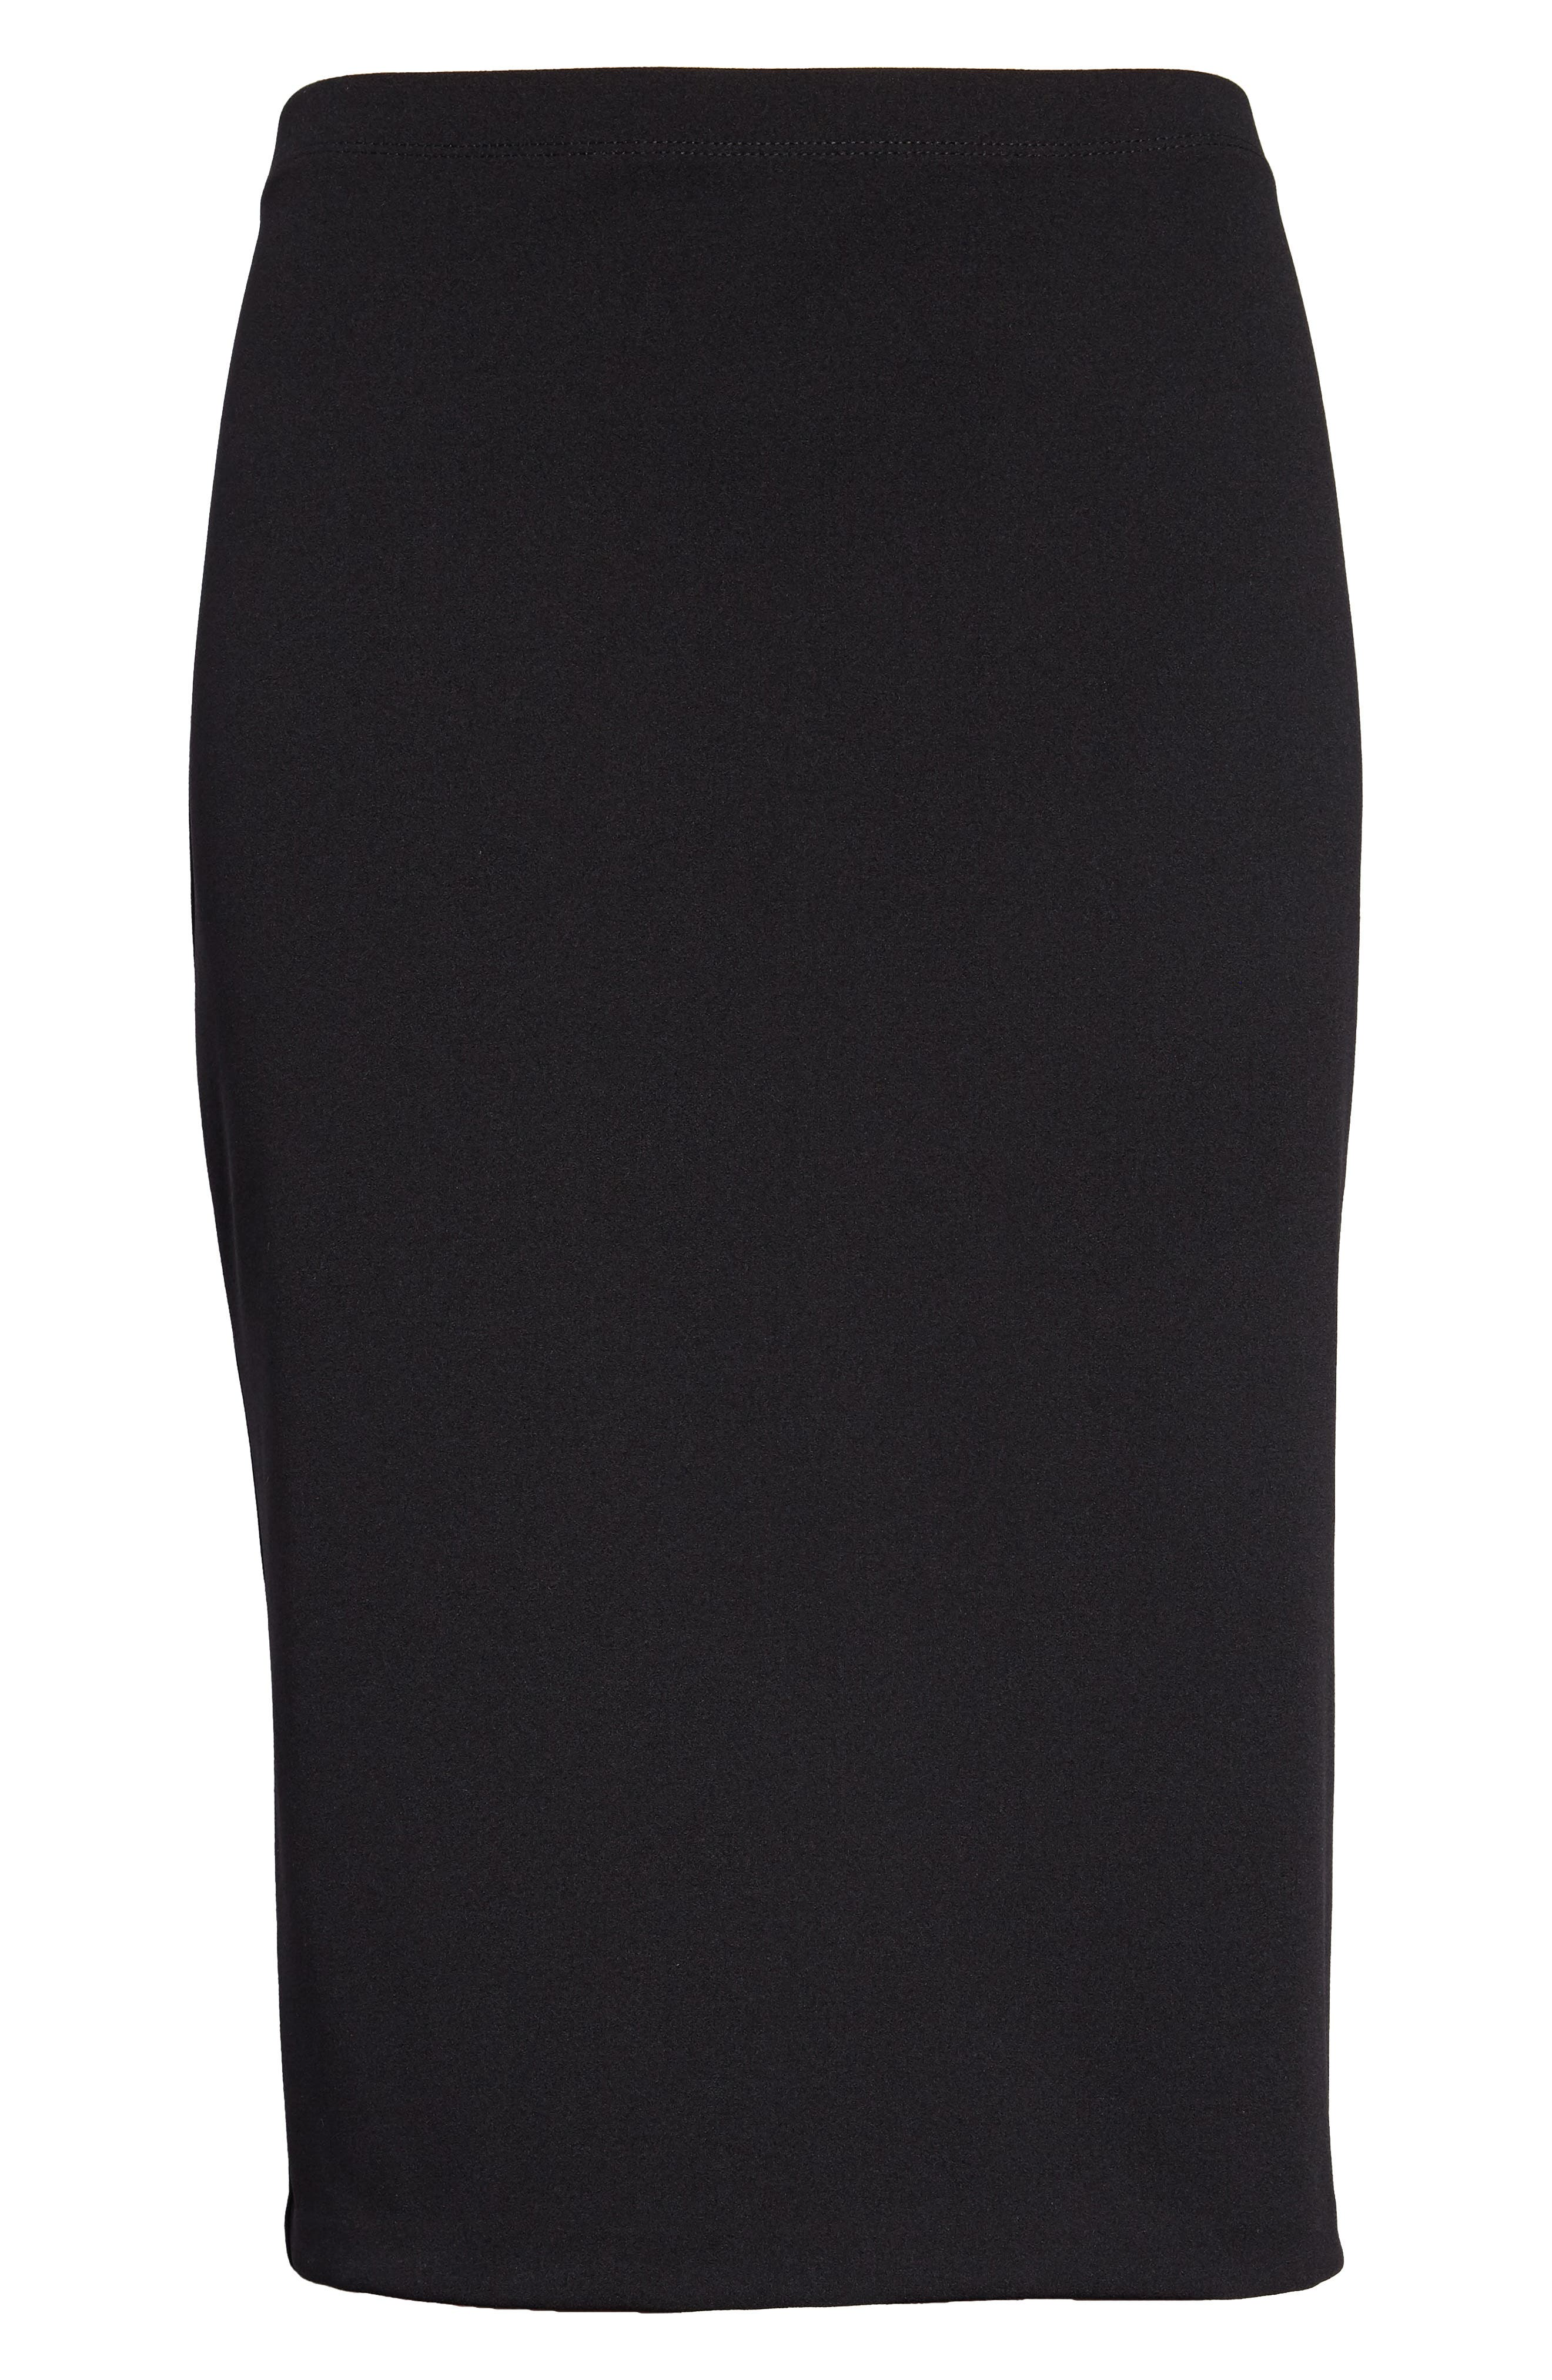 VINCE CAMUTO, Pull-On Pencil Skirt, Alternate thumbnail 3, color, RICH BLACK